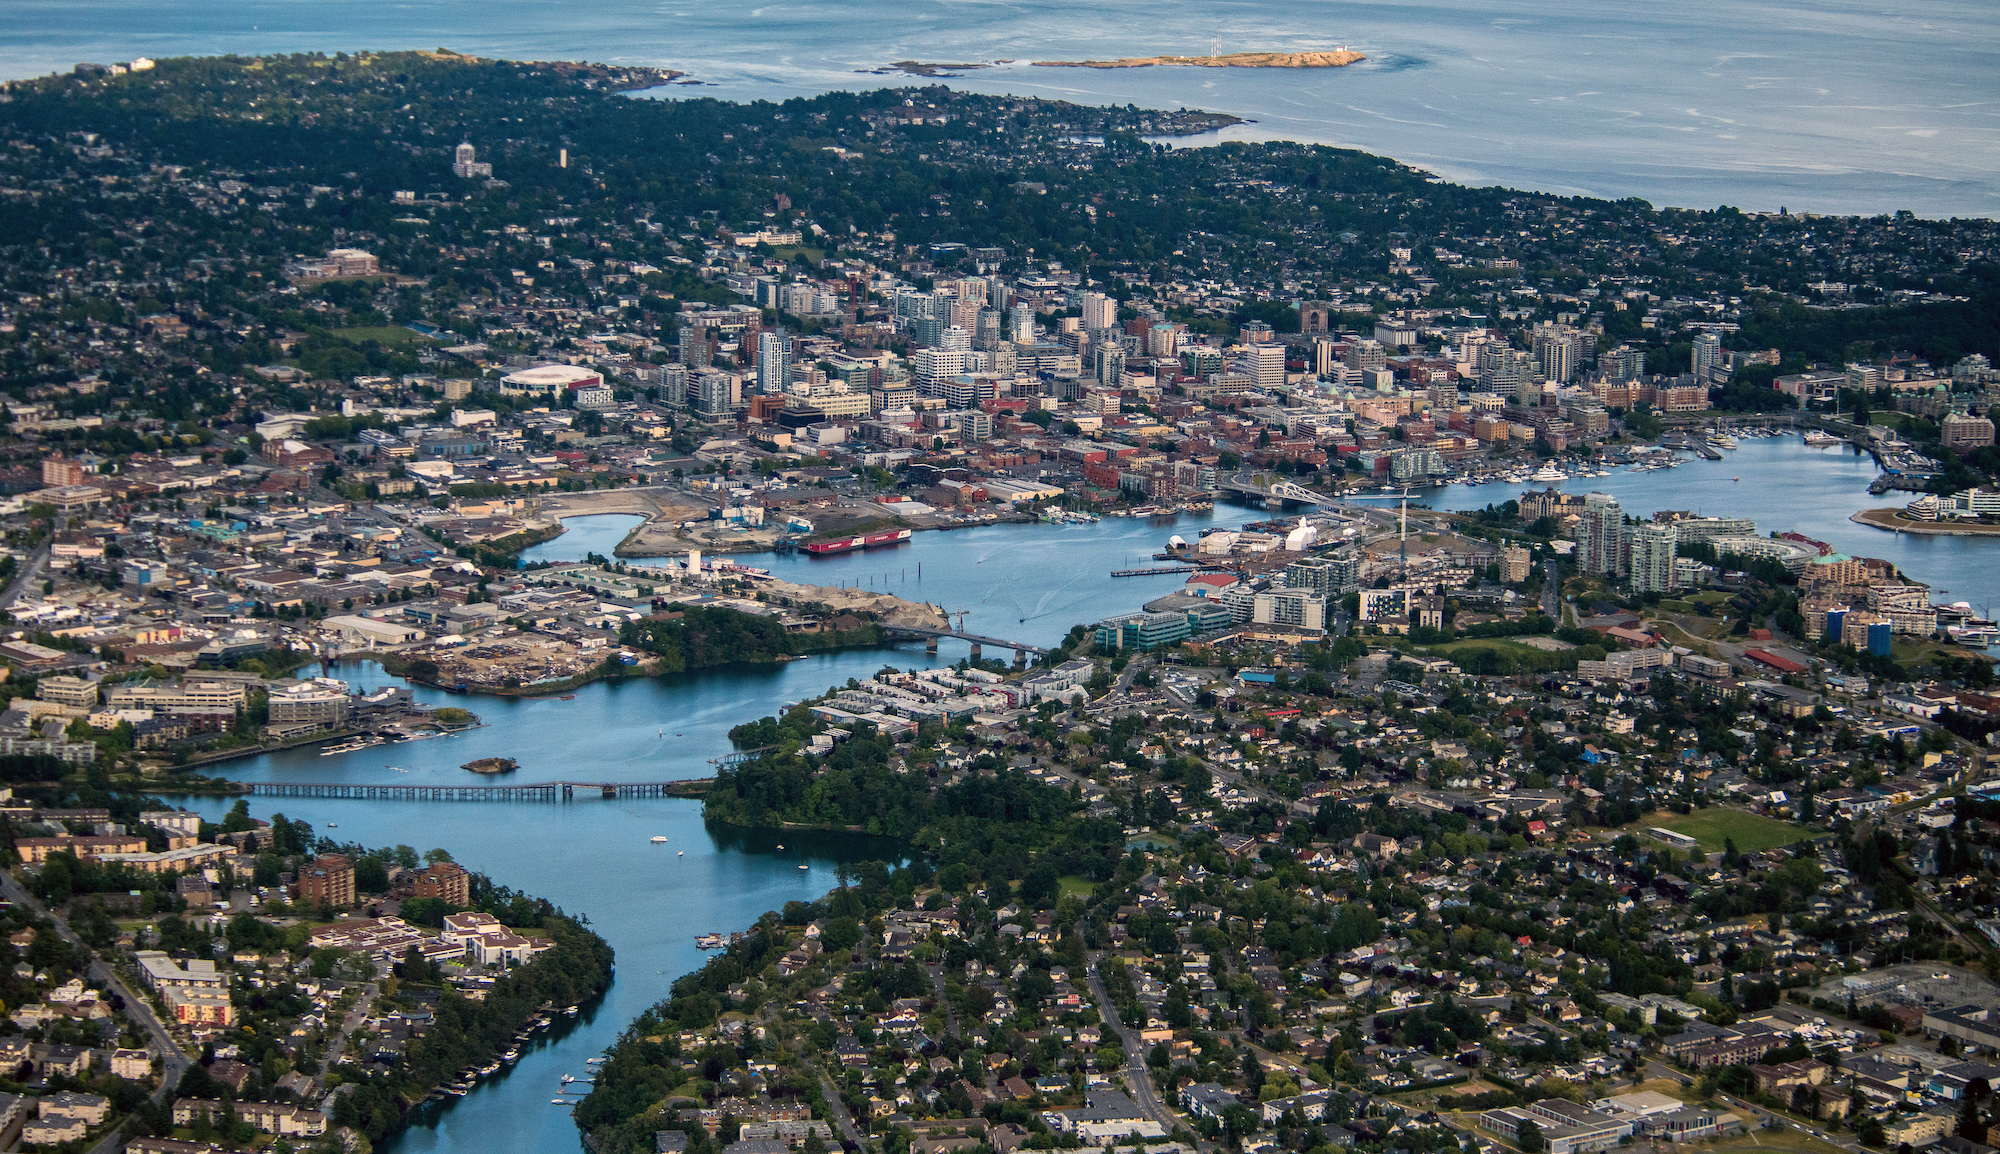 Opinion: Victoria's community associations need to evolve